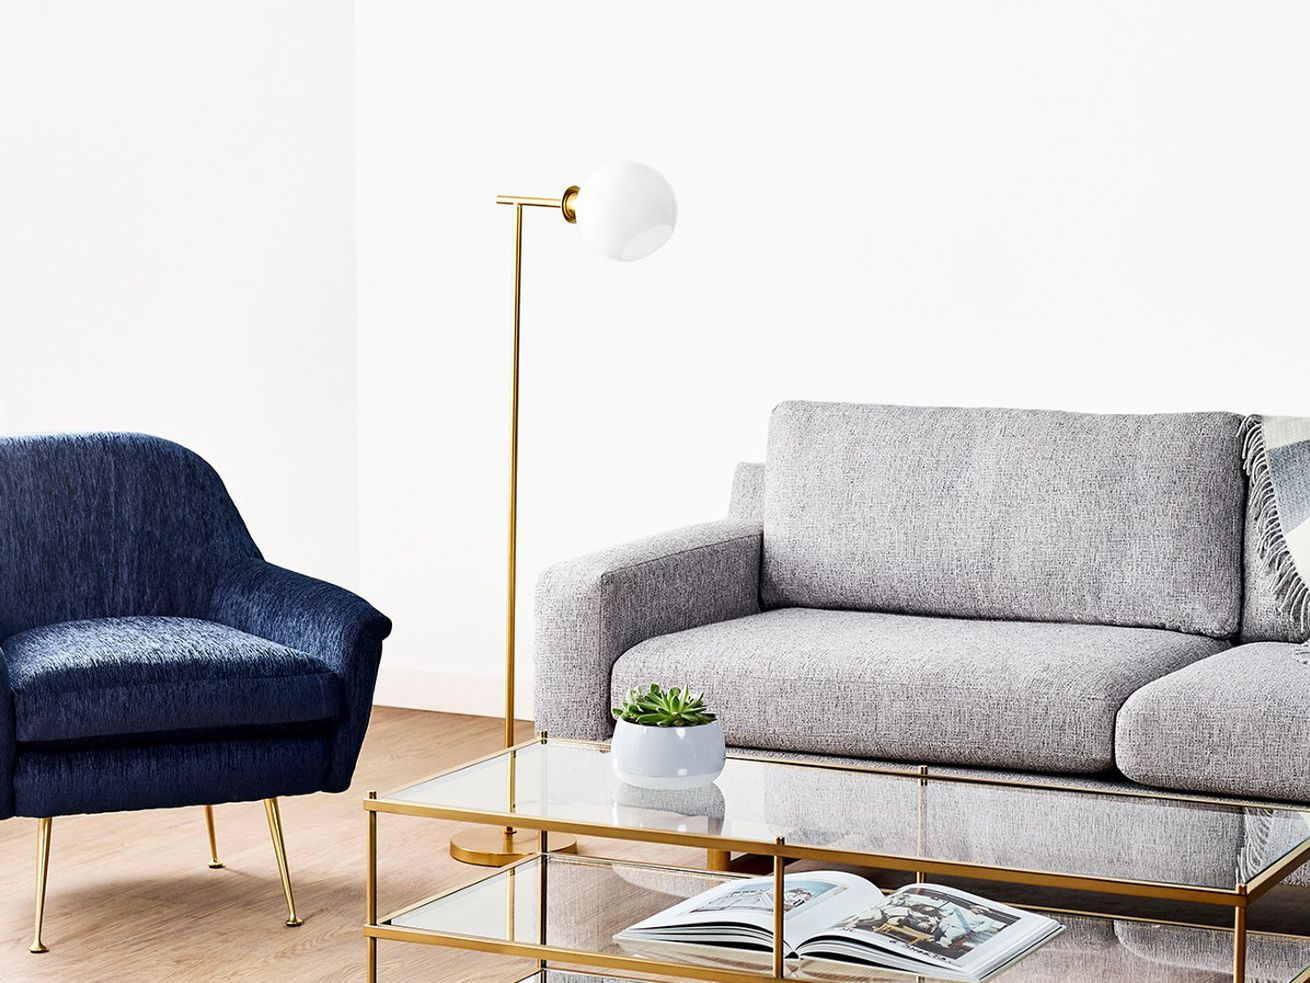 Feather now offers goods from West Elm.